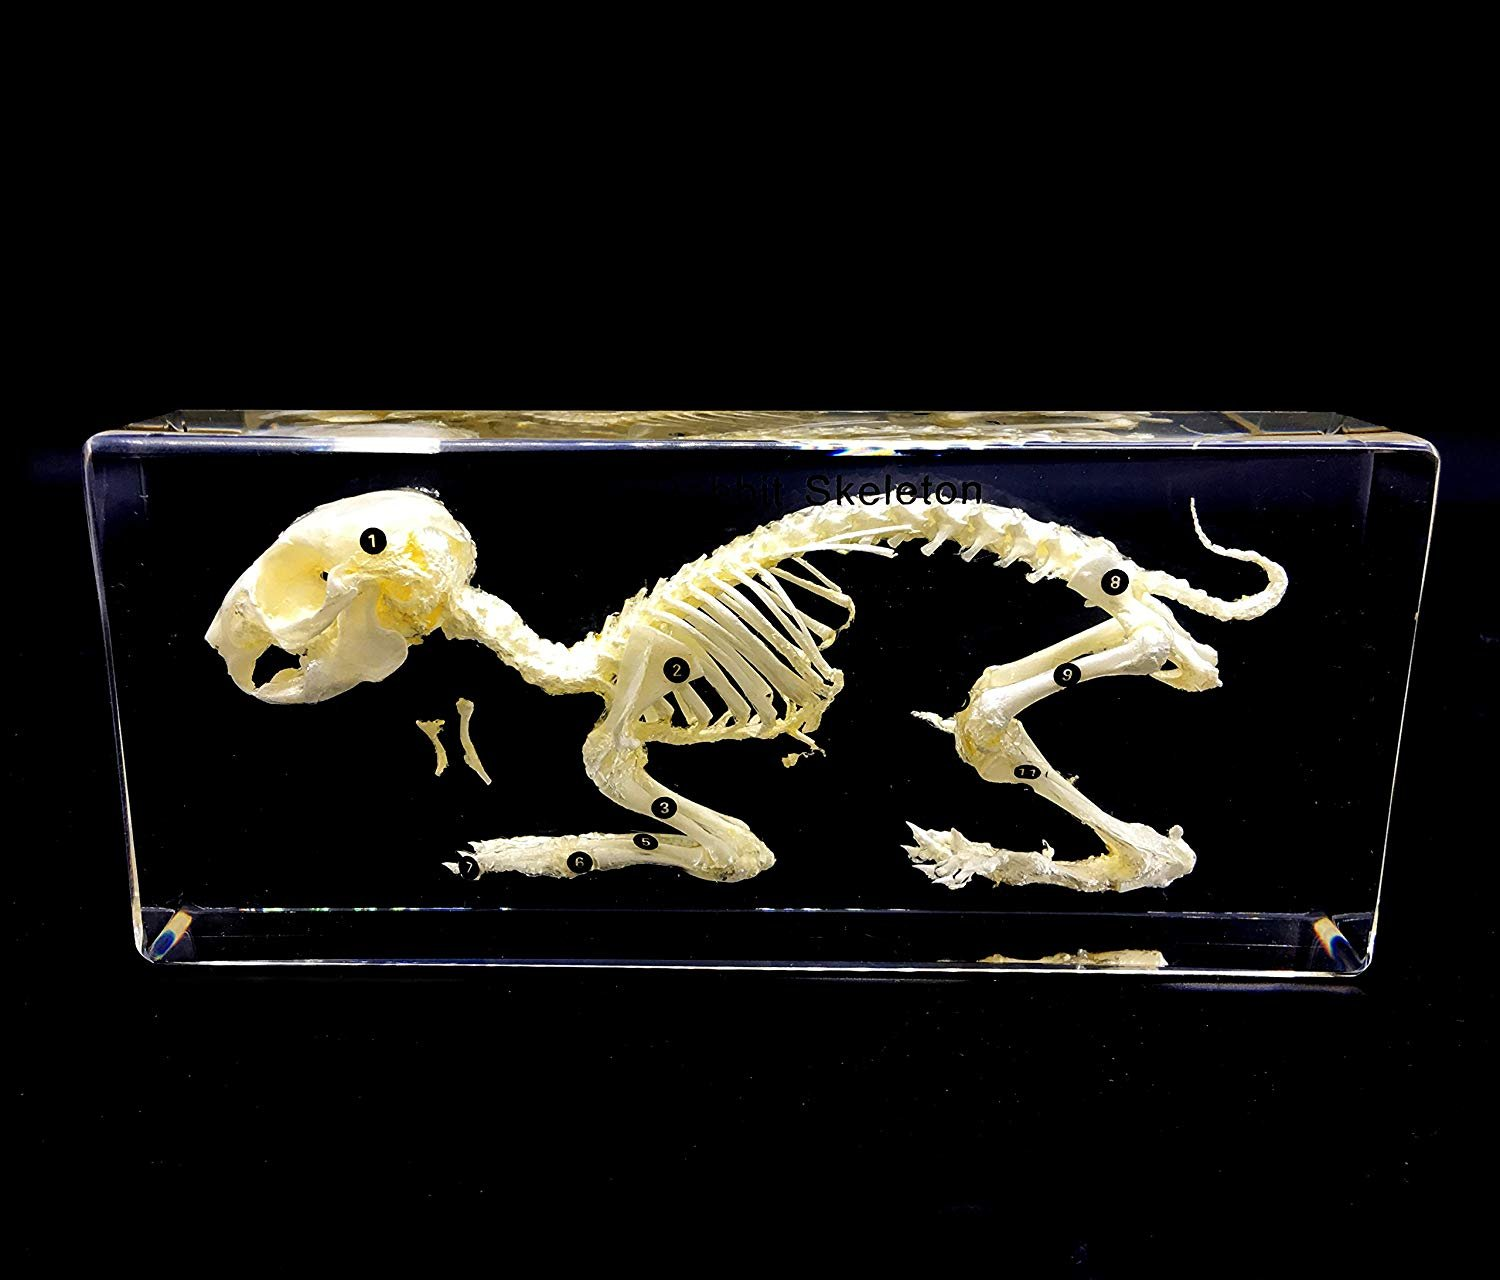 Real Rabbit Skeleton Specimen in Acrylic Block Paperweights Science Classroom Specimens for Science Education